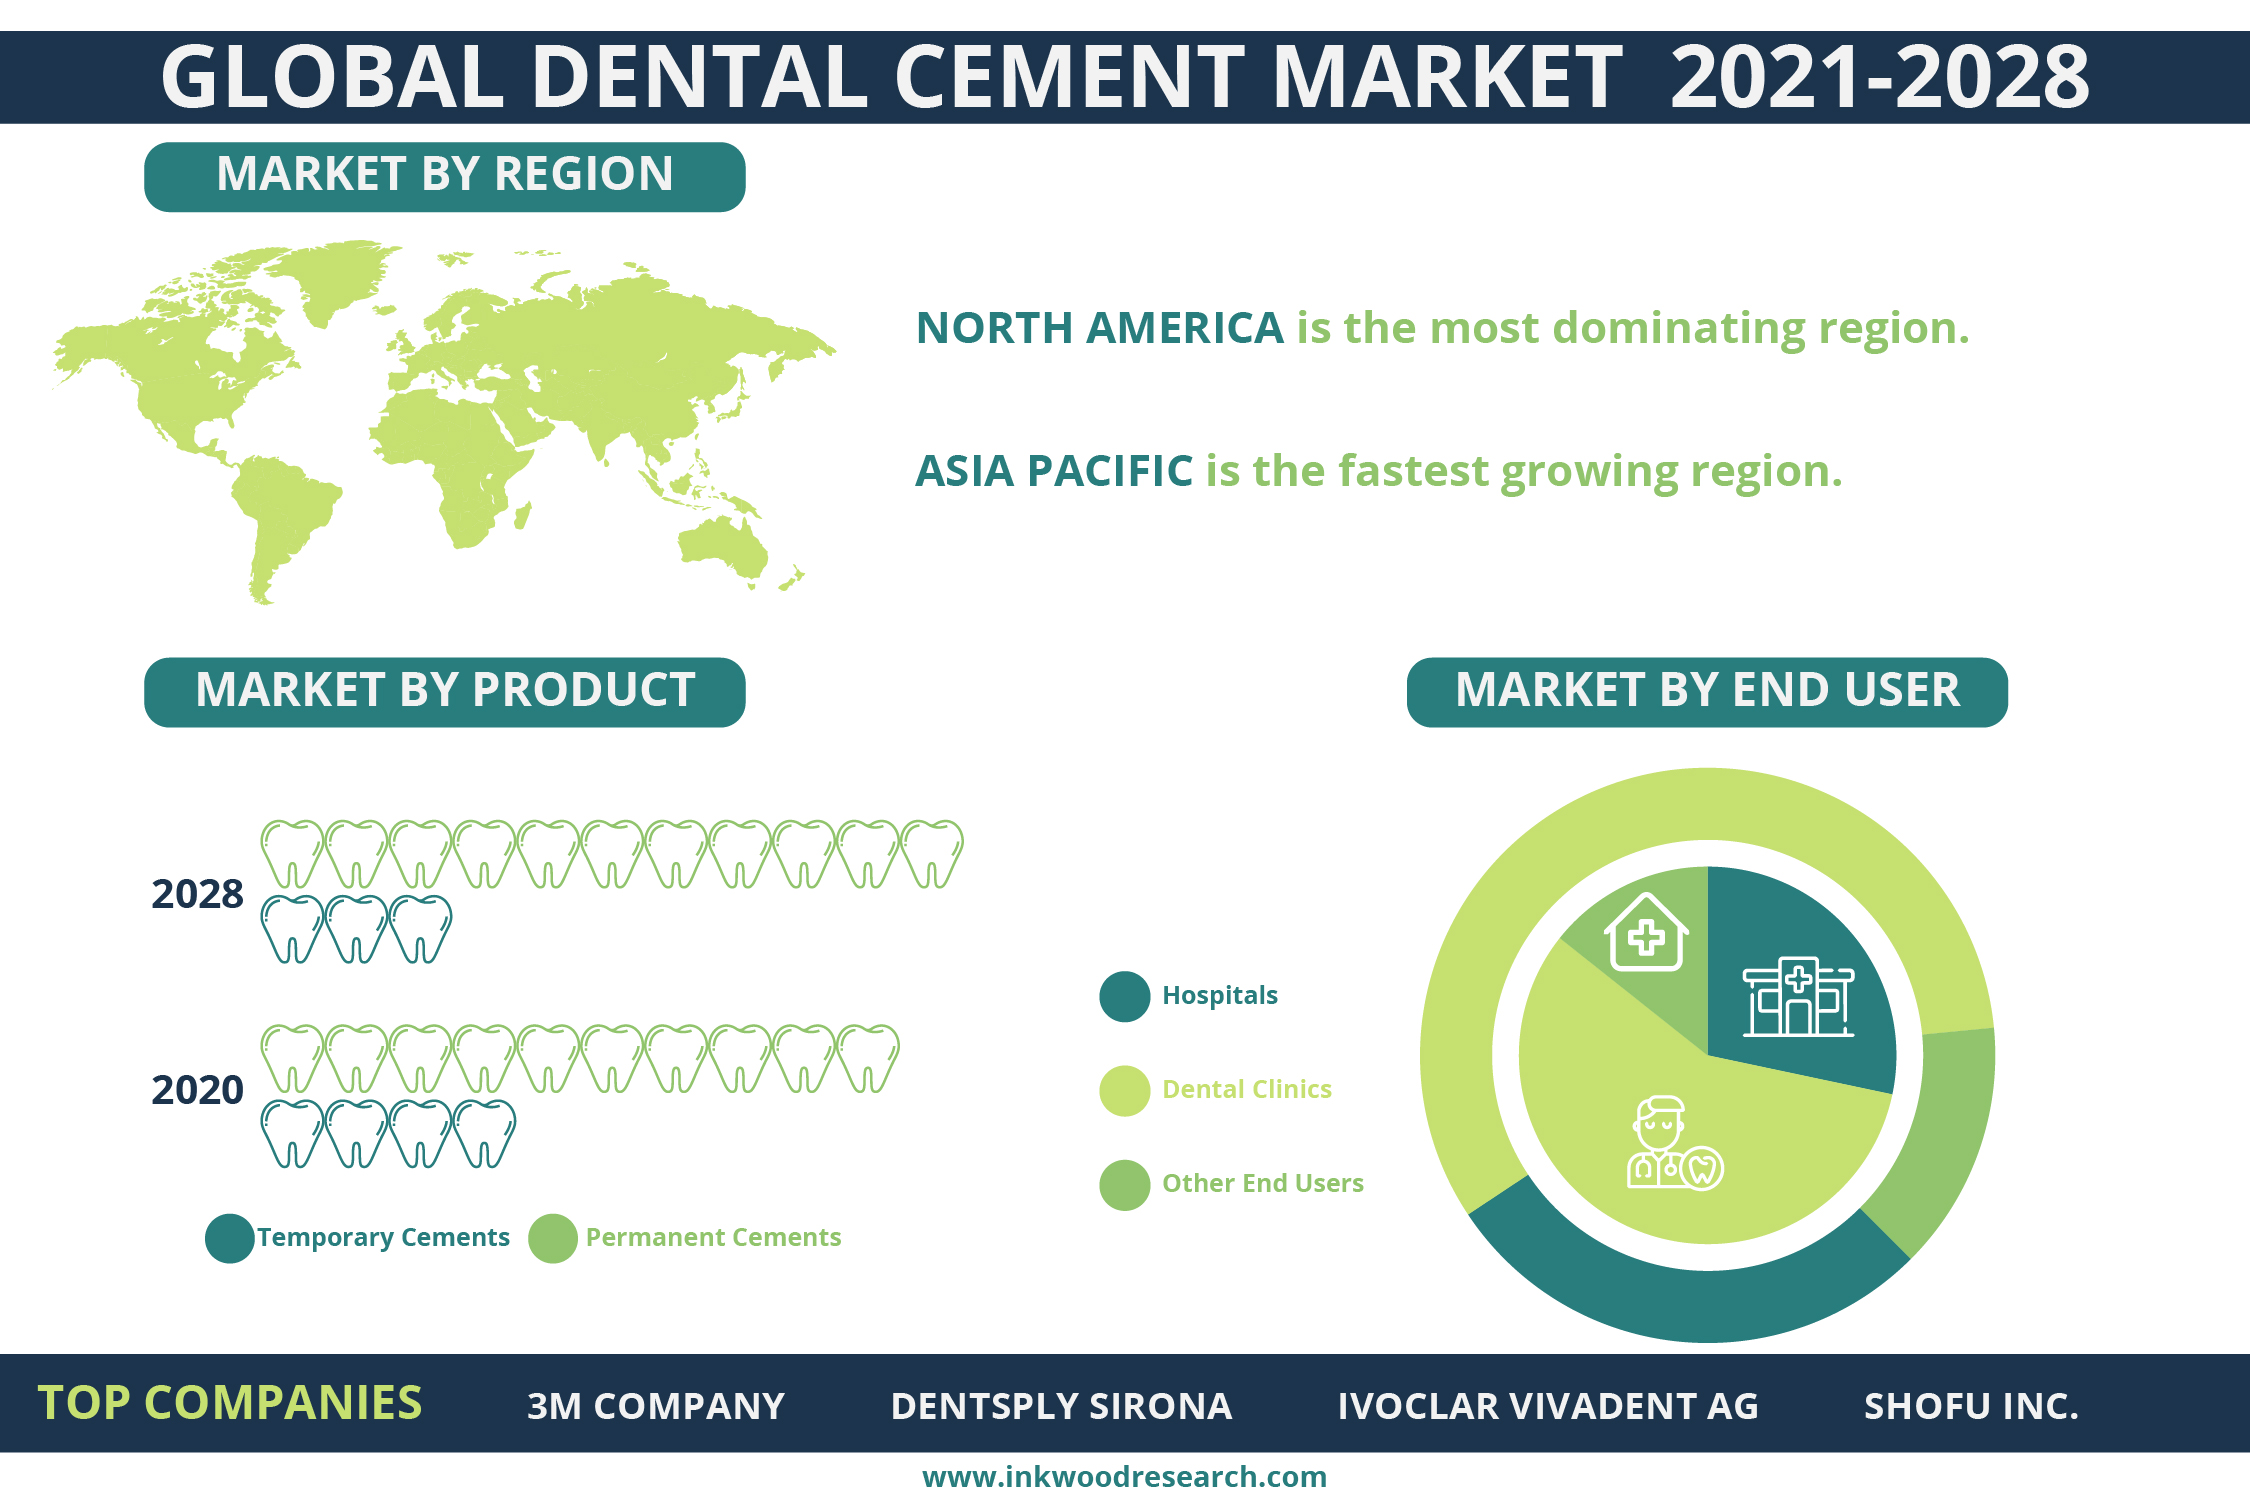 Rising Number of Dental Cavities is surging the Global Dental Cement Market Growth